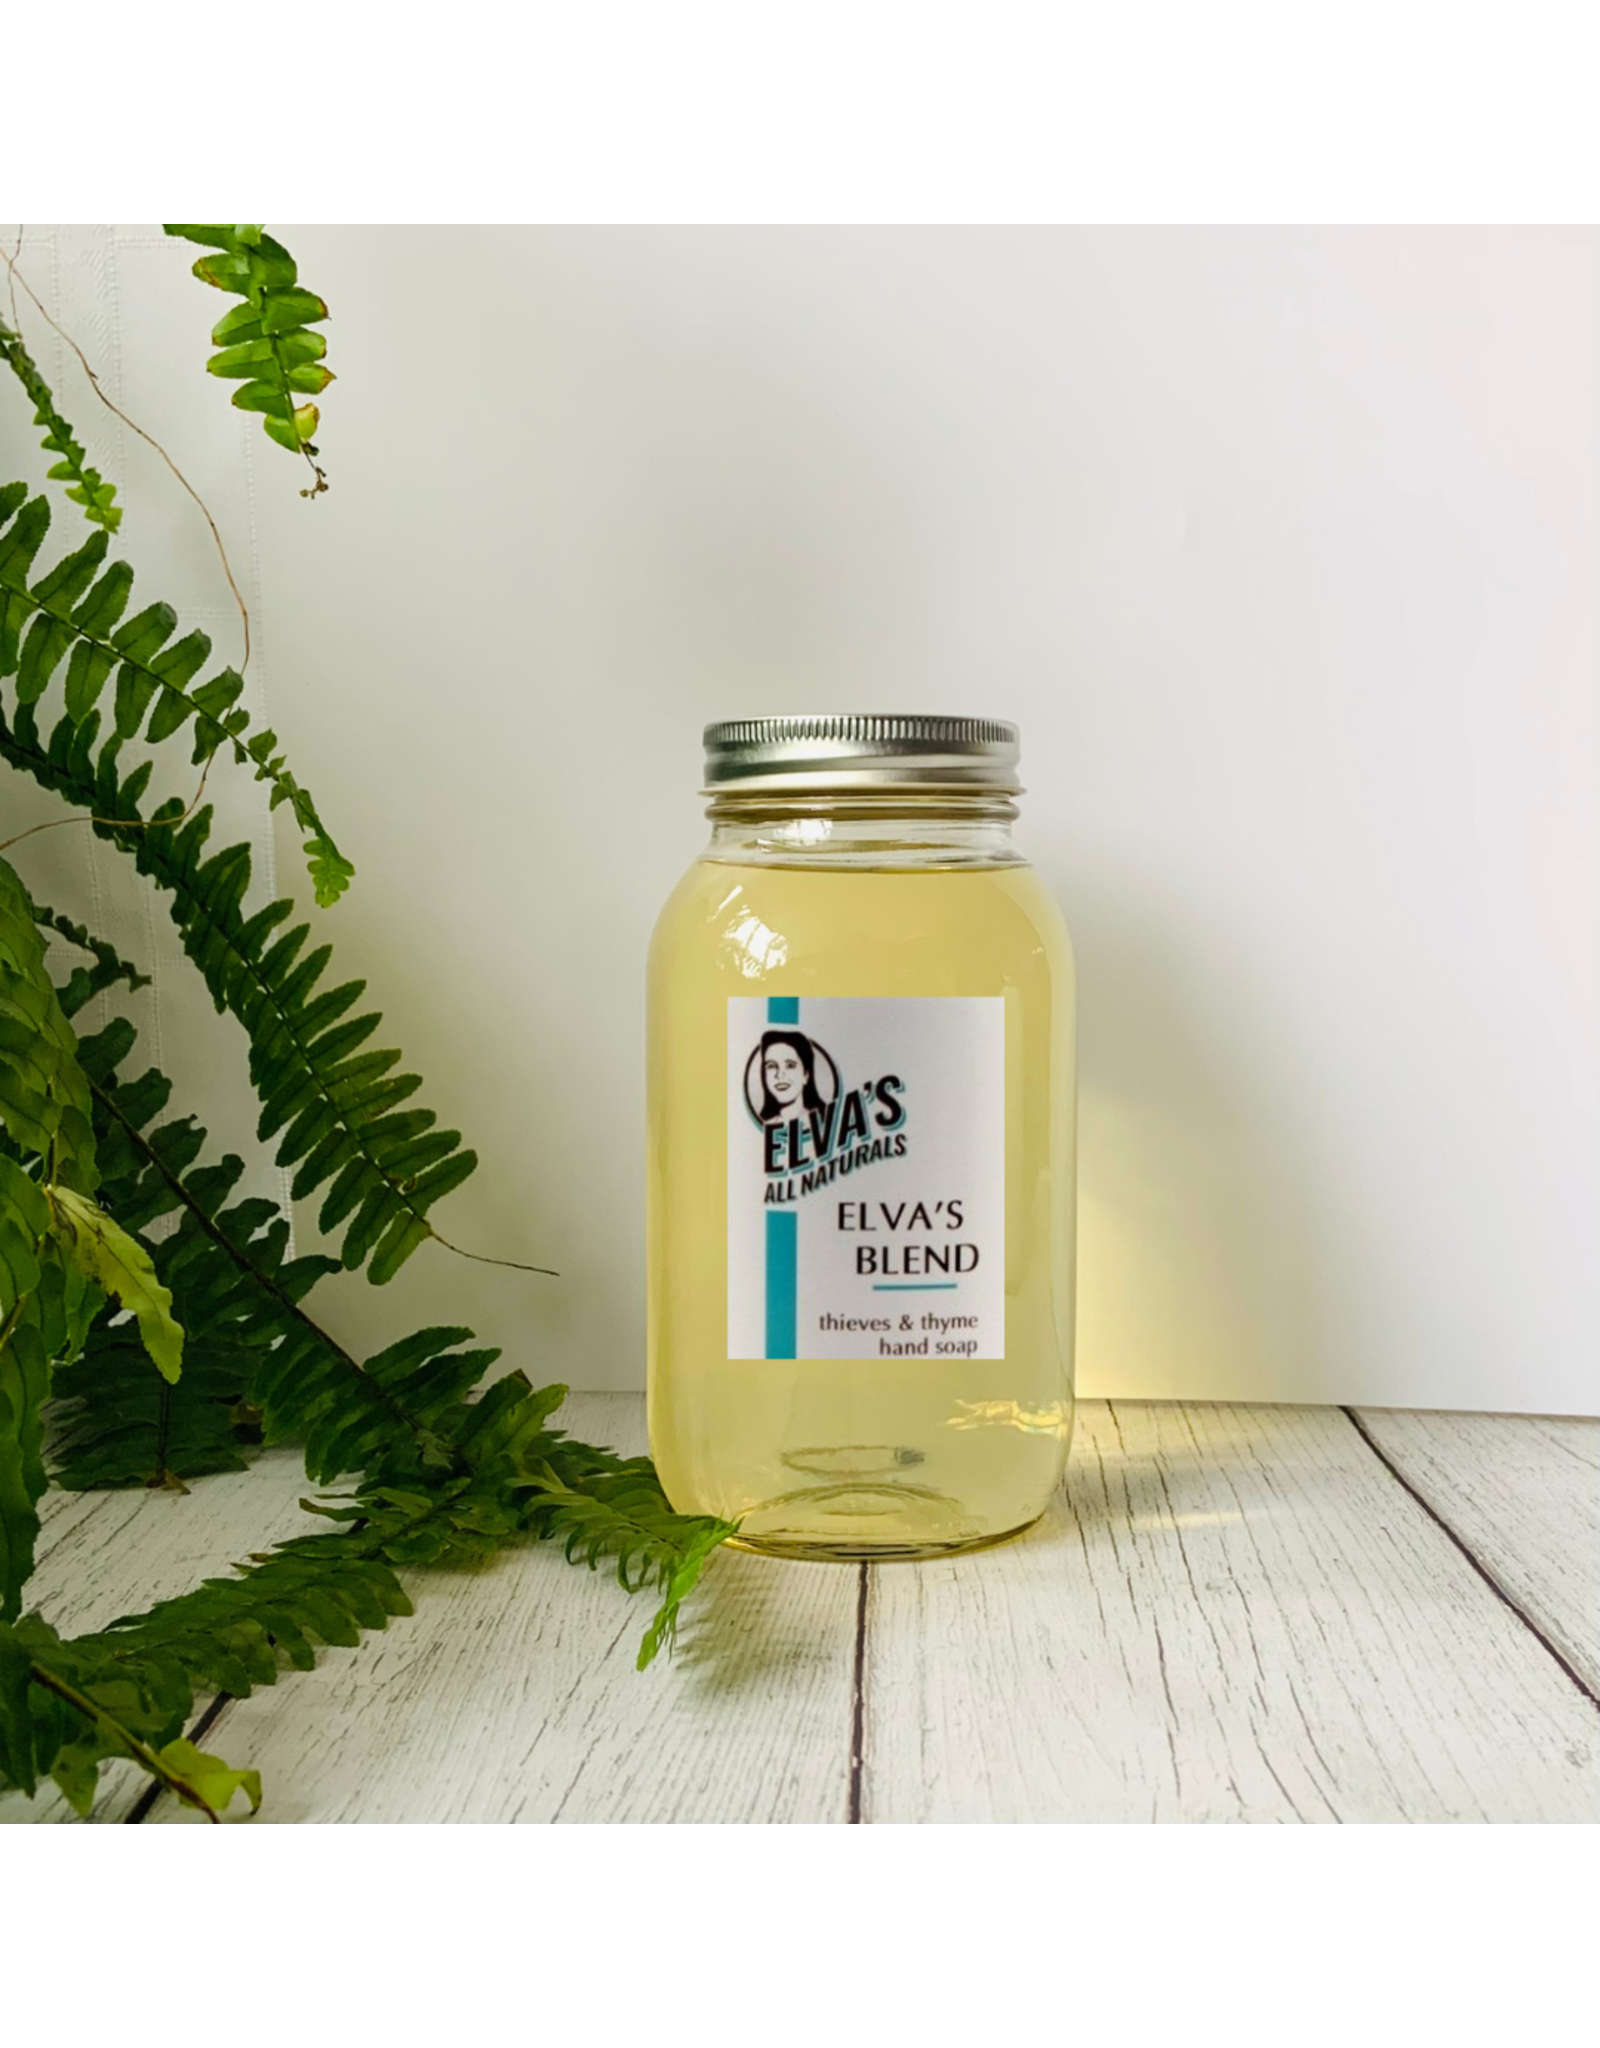 Elva's All Naturals HomeFill - Thieves & Thyme Herbal Hand Soap by Elva's All Naturals